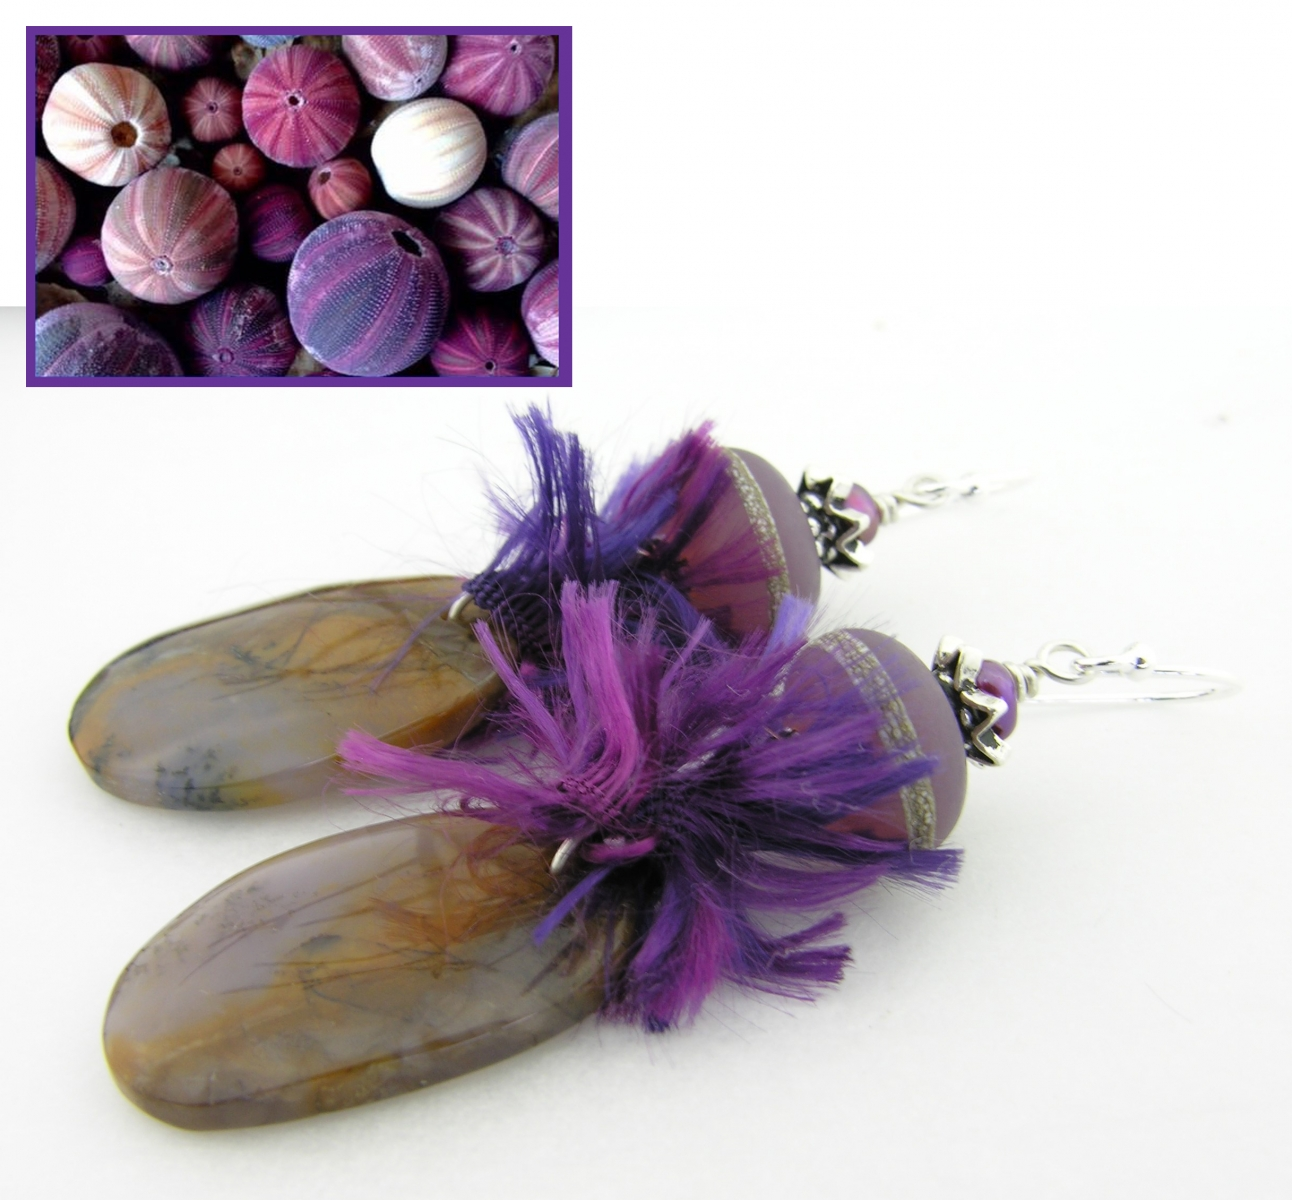 earthy shades earrings purple brown lavendar amethyst sage agate, artisan lampwork freshwater pearls sterling silver handmade